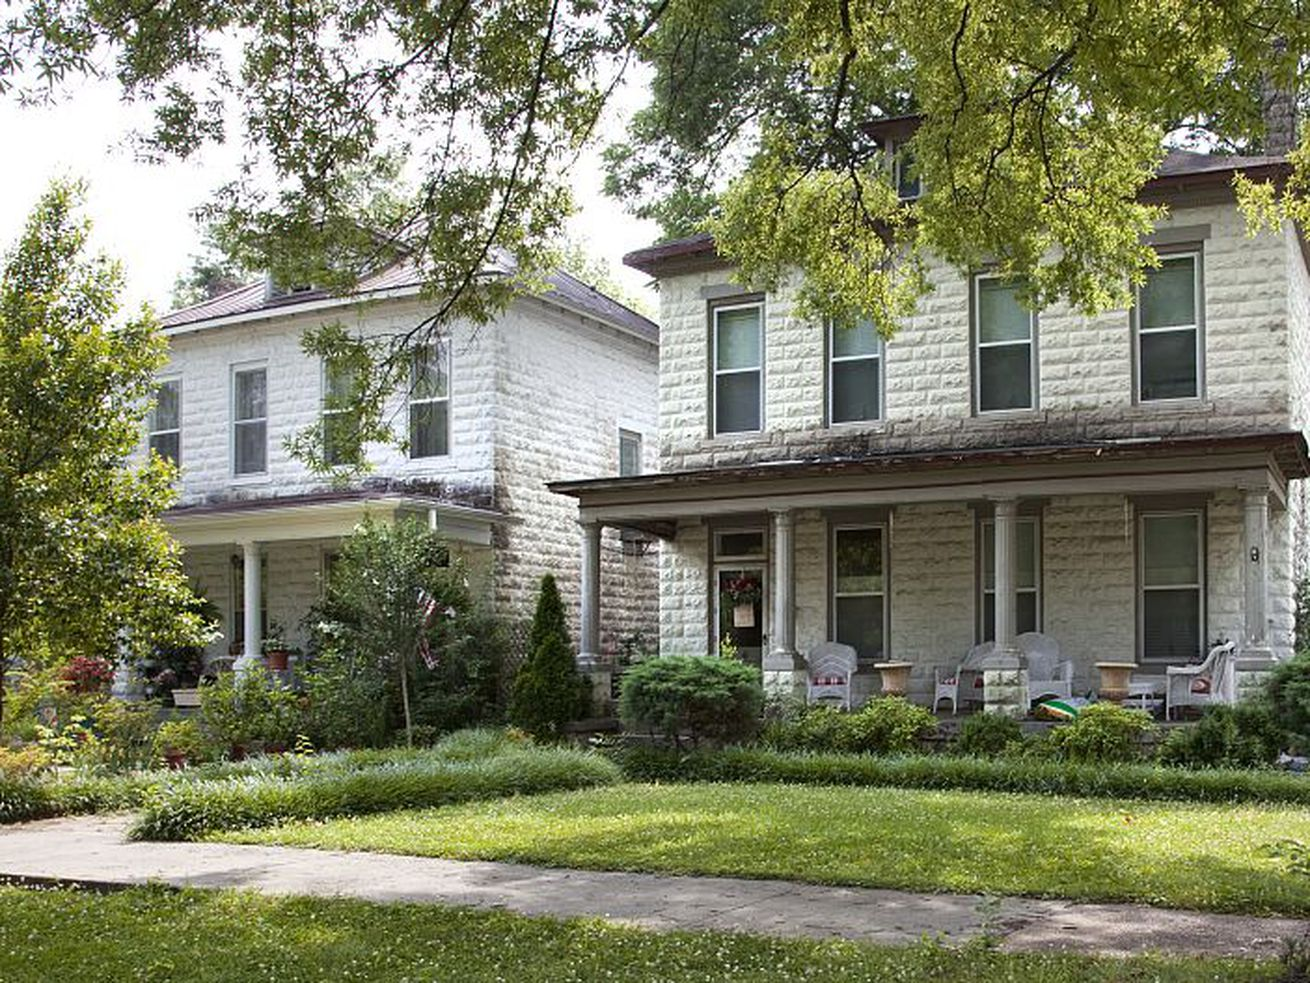 How Sears Kit Homes changed housing